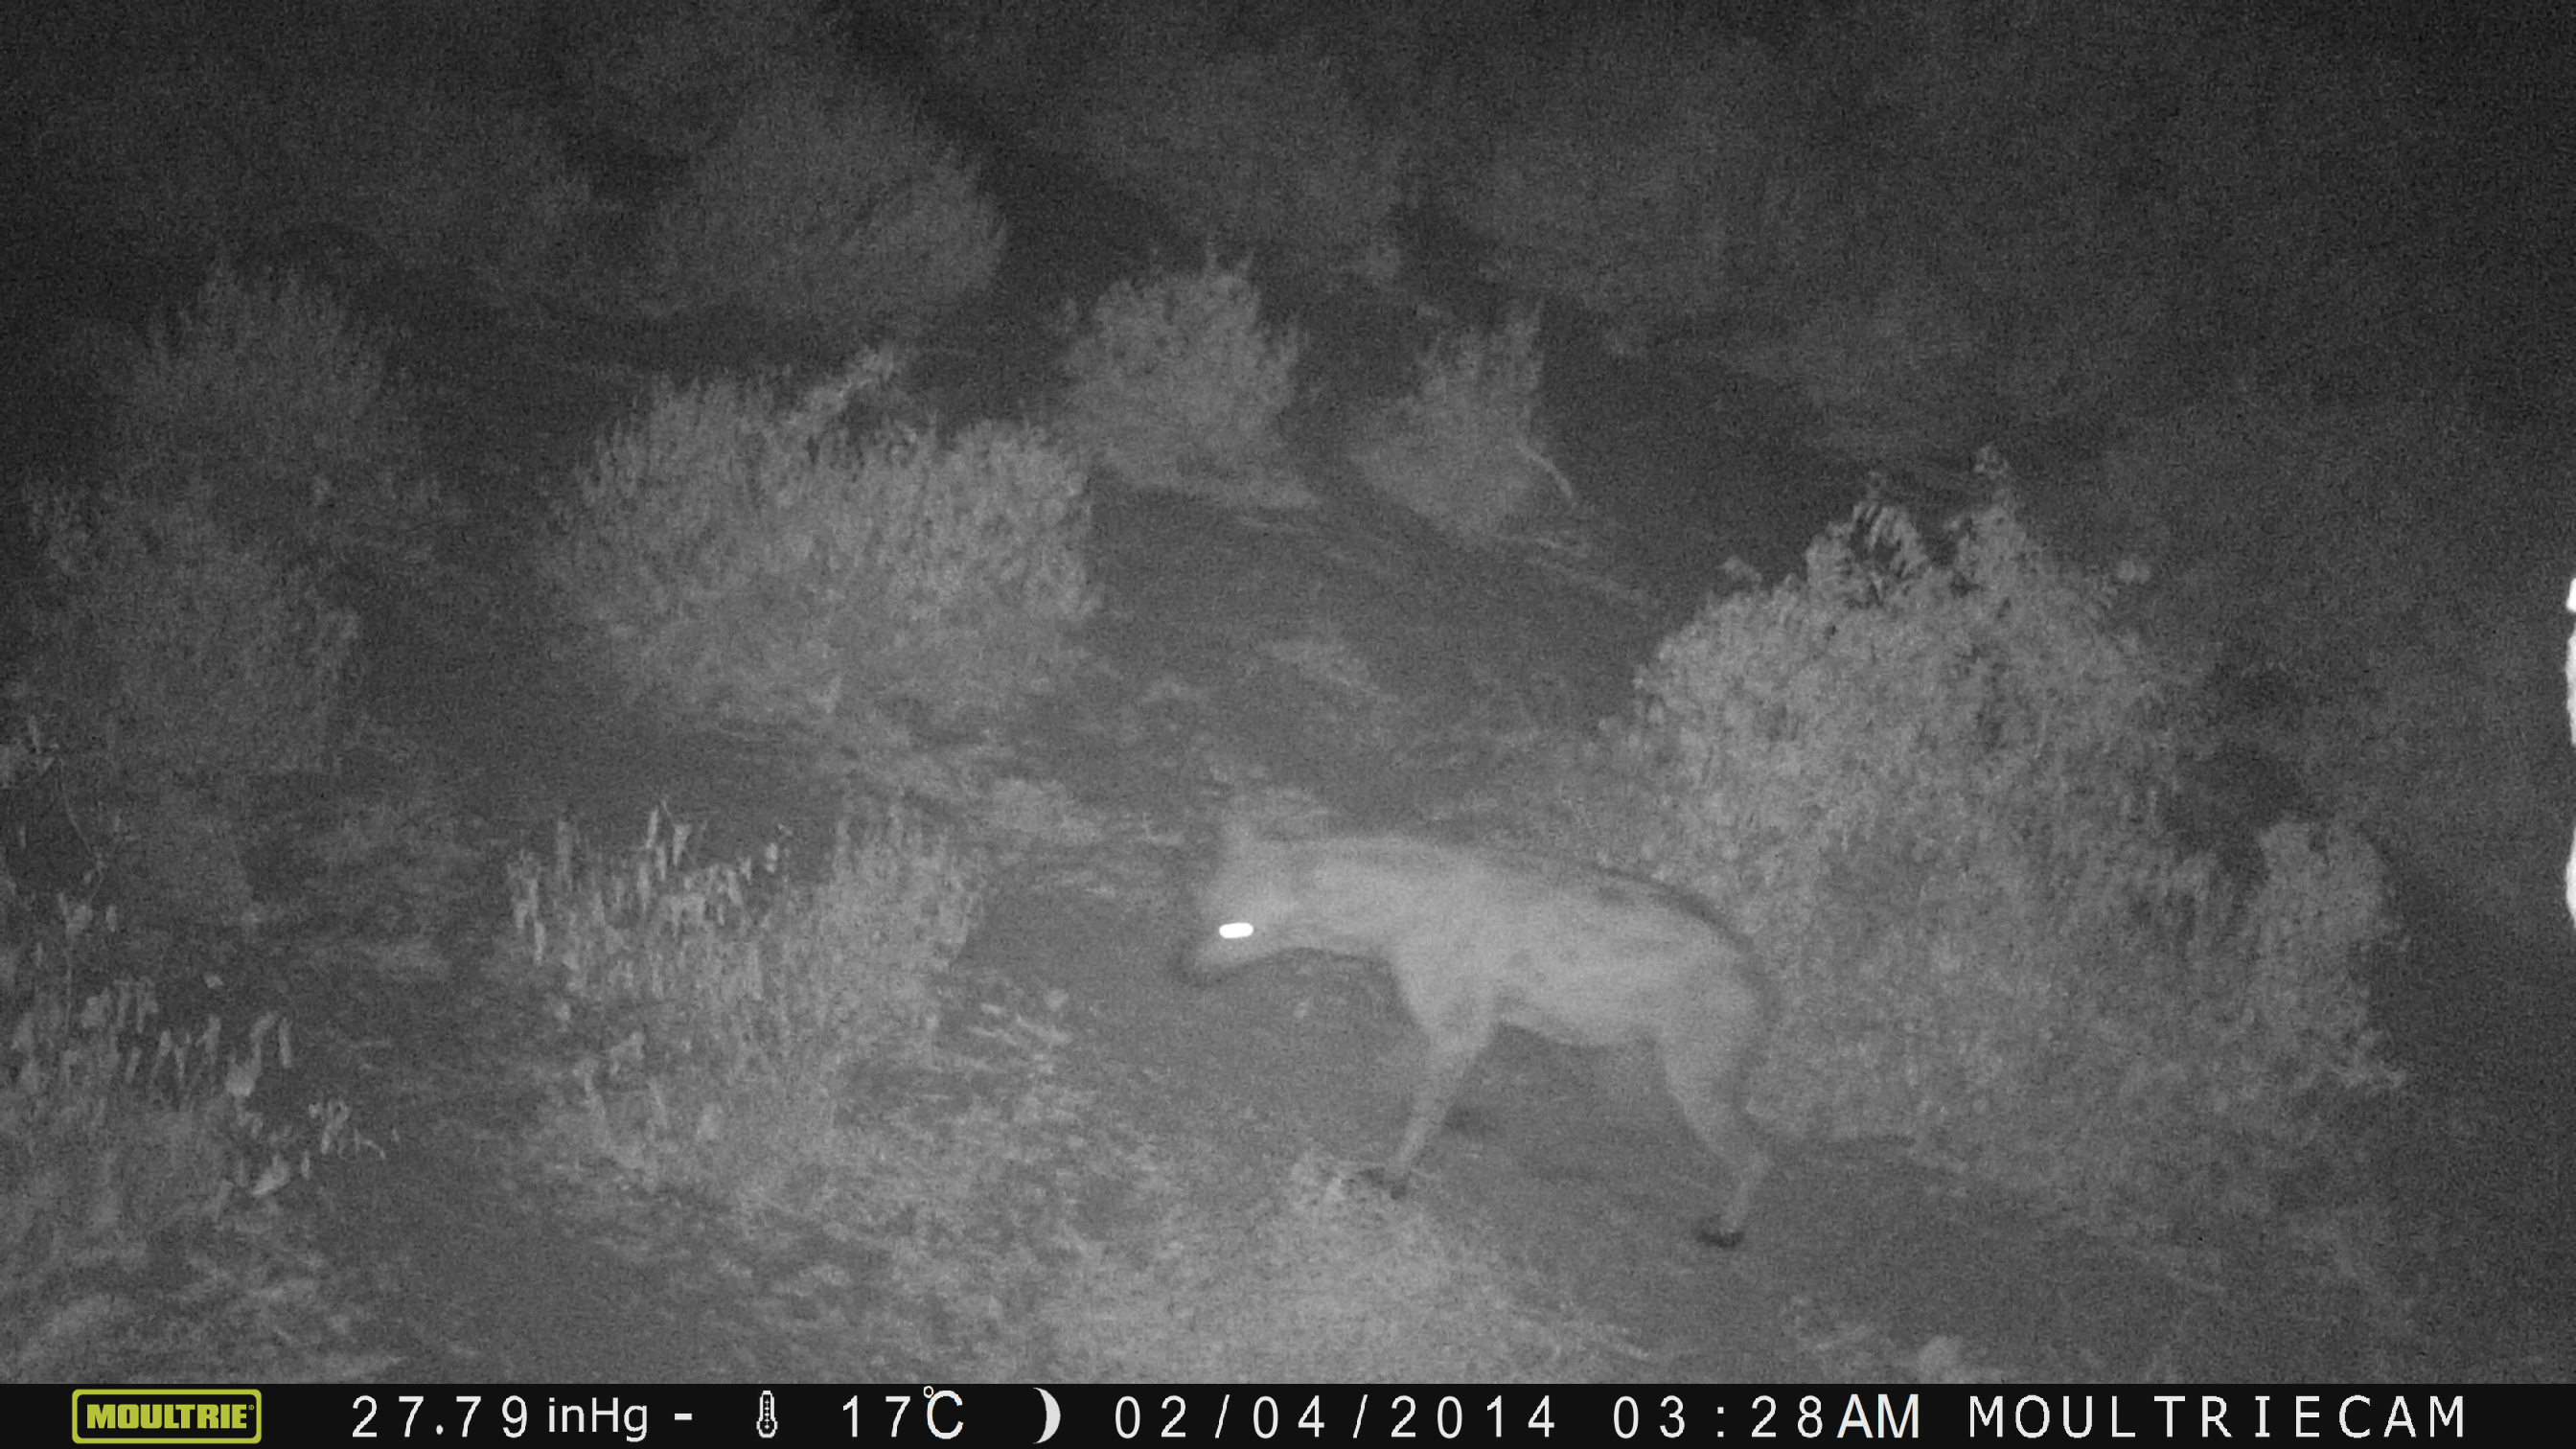 MAMMAL-MONITORING-Spotted-Hyena-on-camera-traps